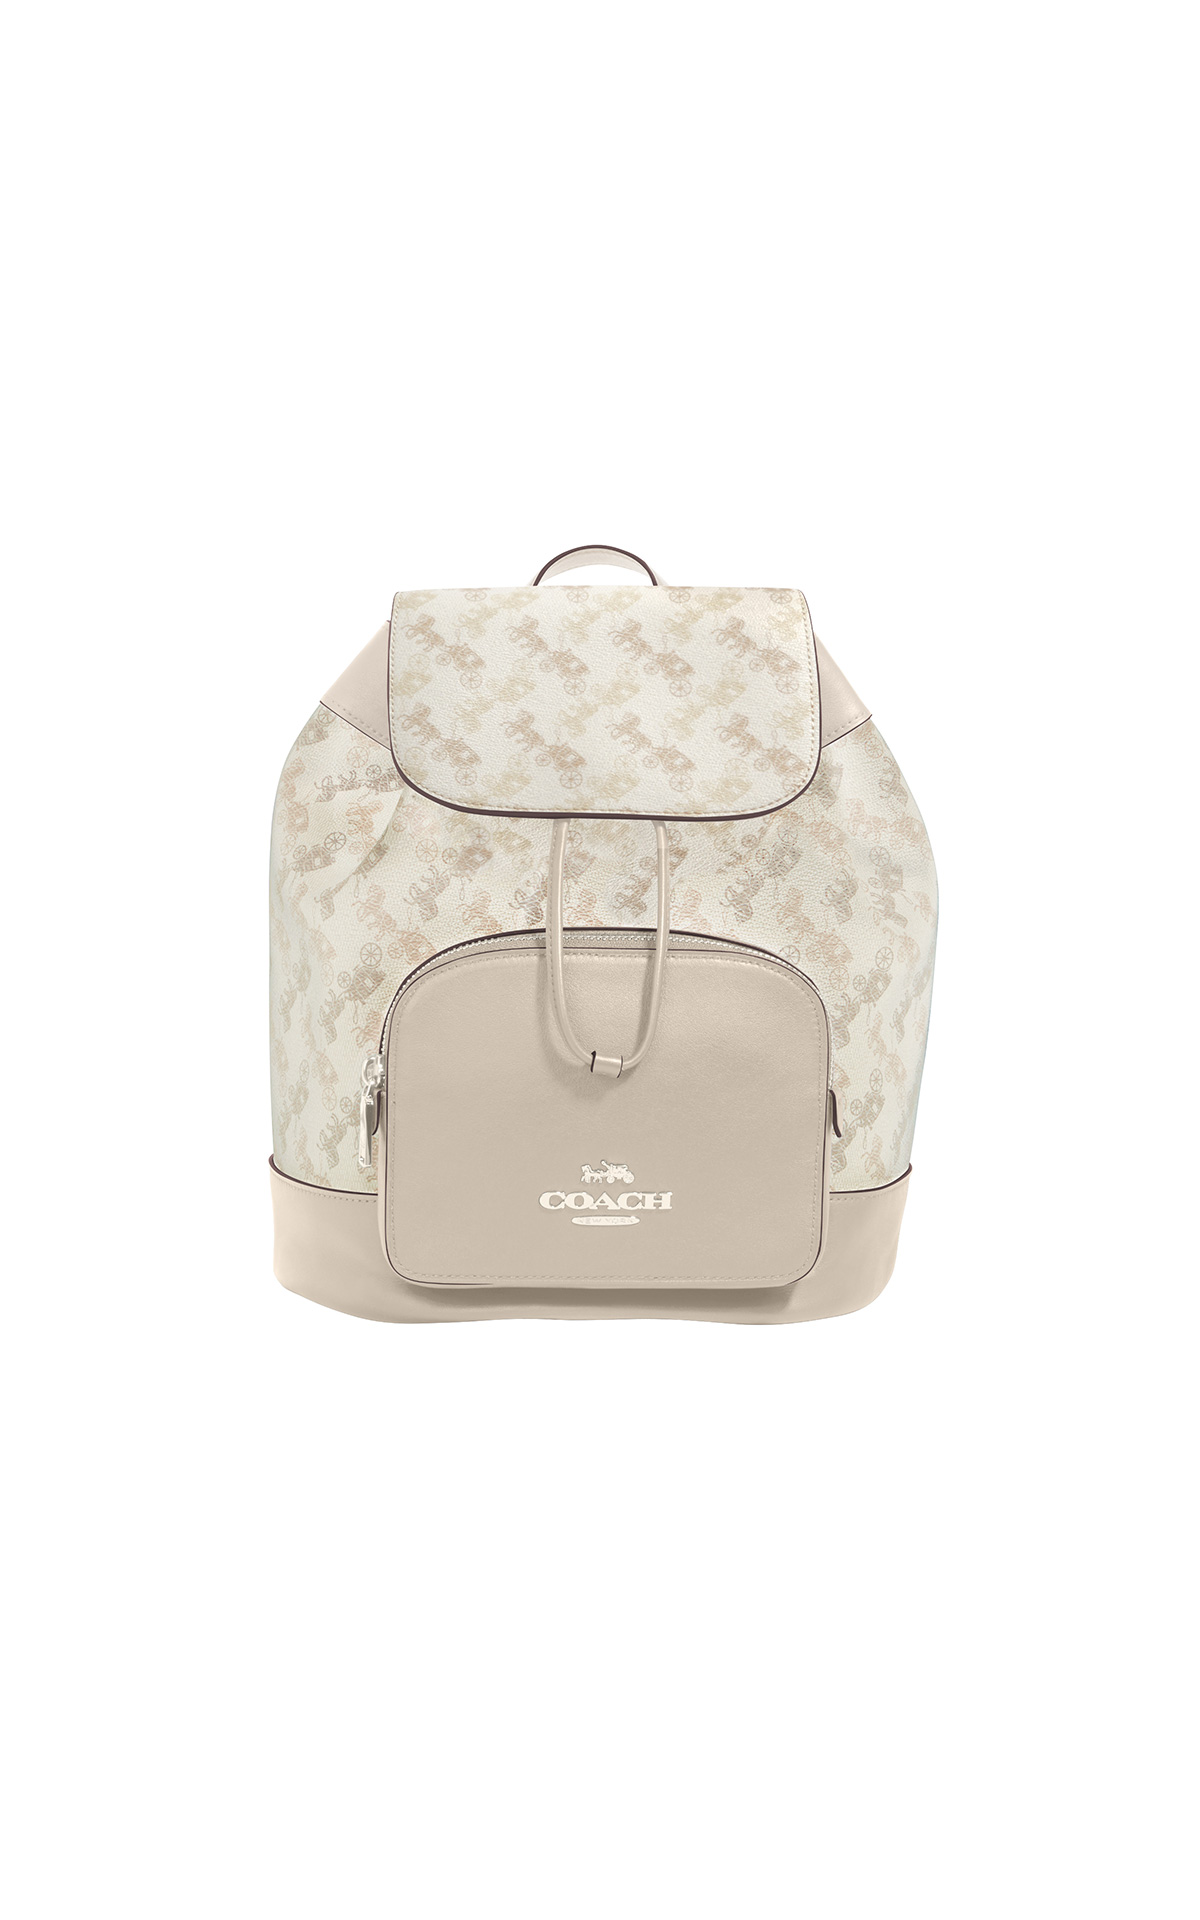 Coach Horse and Carriage Jes Backpack in cream beige multi at The Bicester Village Shopping Collection